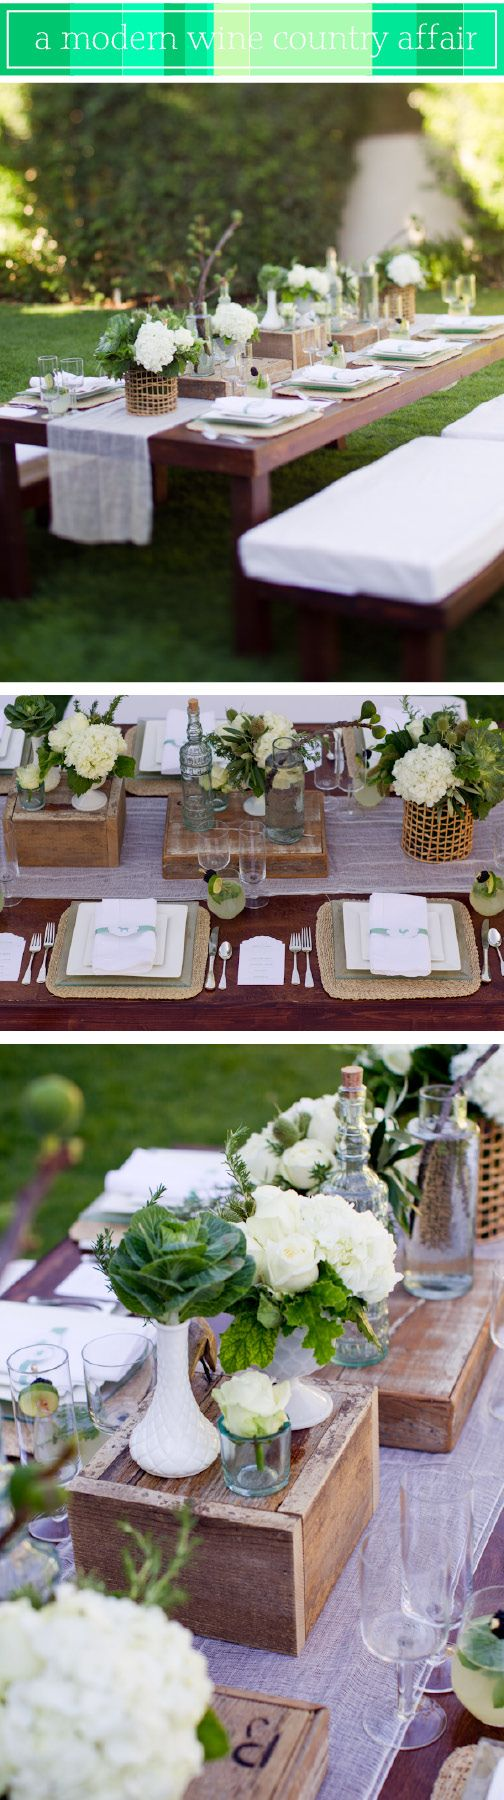 Canvas & Canopy | Events by Cortnie | The art of celebration from inspiration to creation